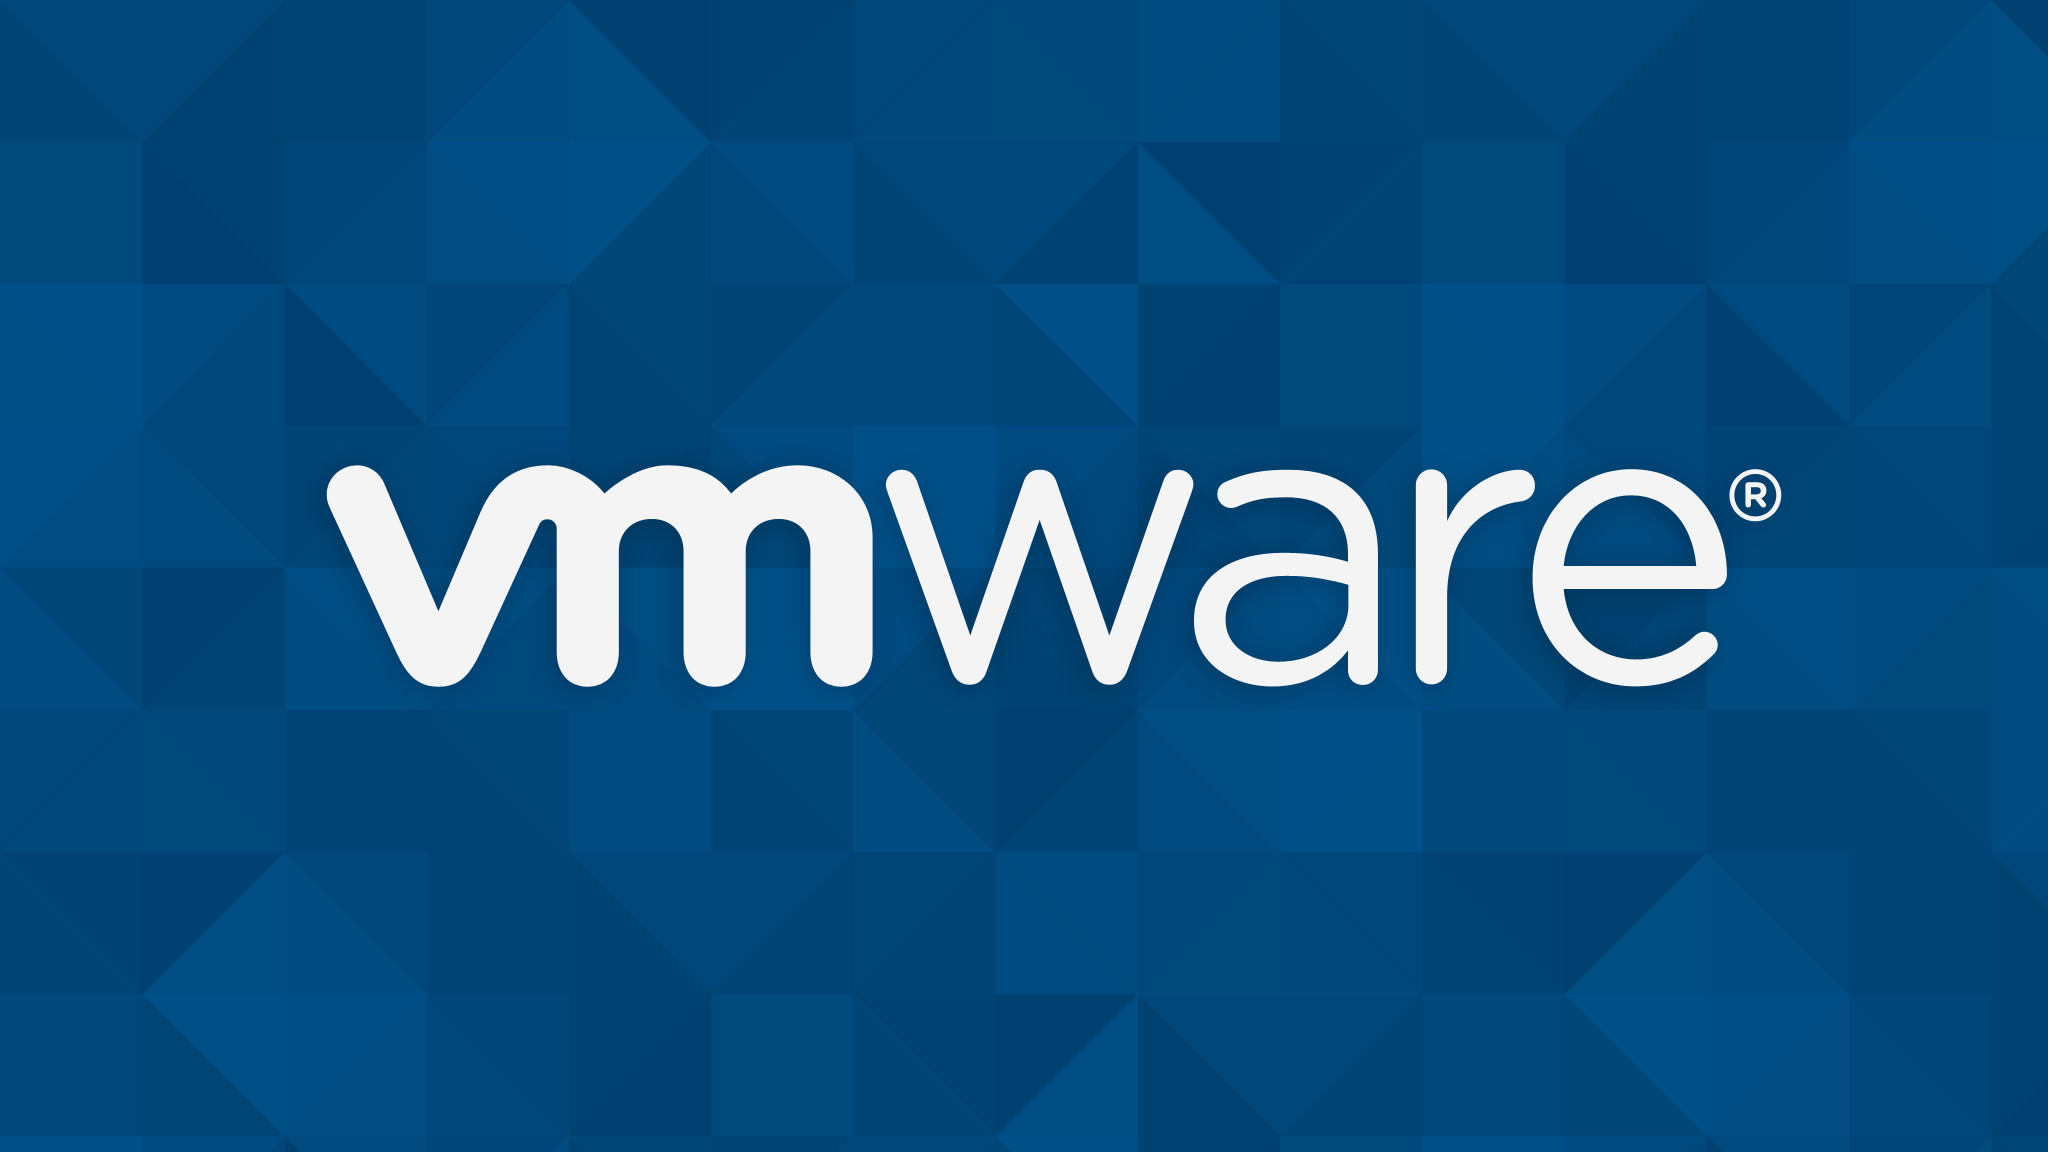 VMware, Inc. (NYSE:VMW) Continues To Face Adaption Challenges In Cloud Business